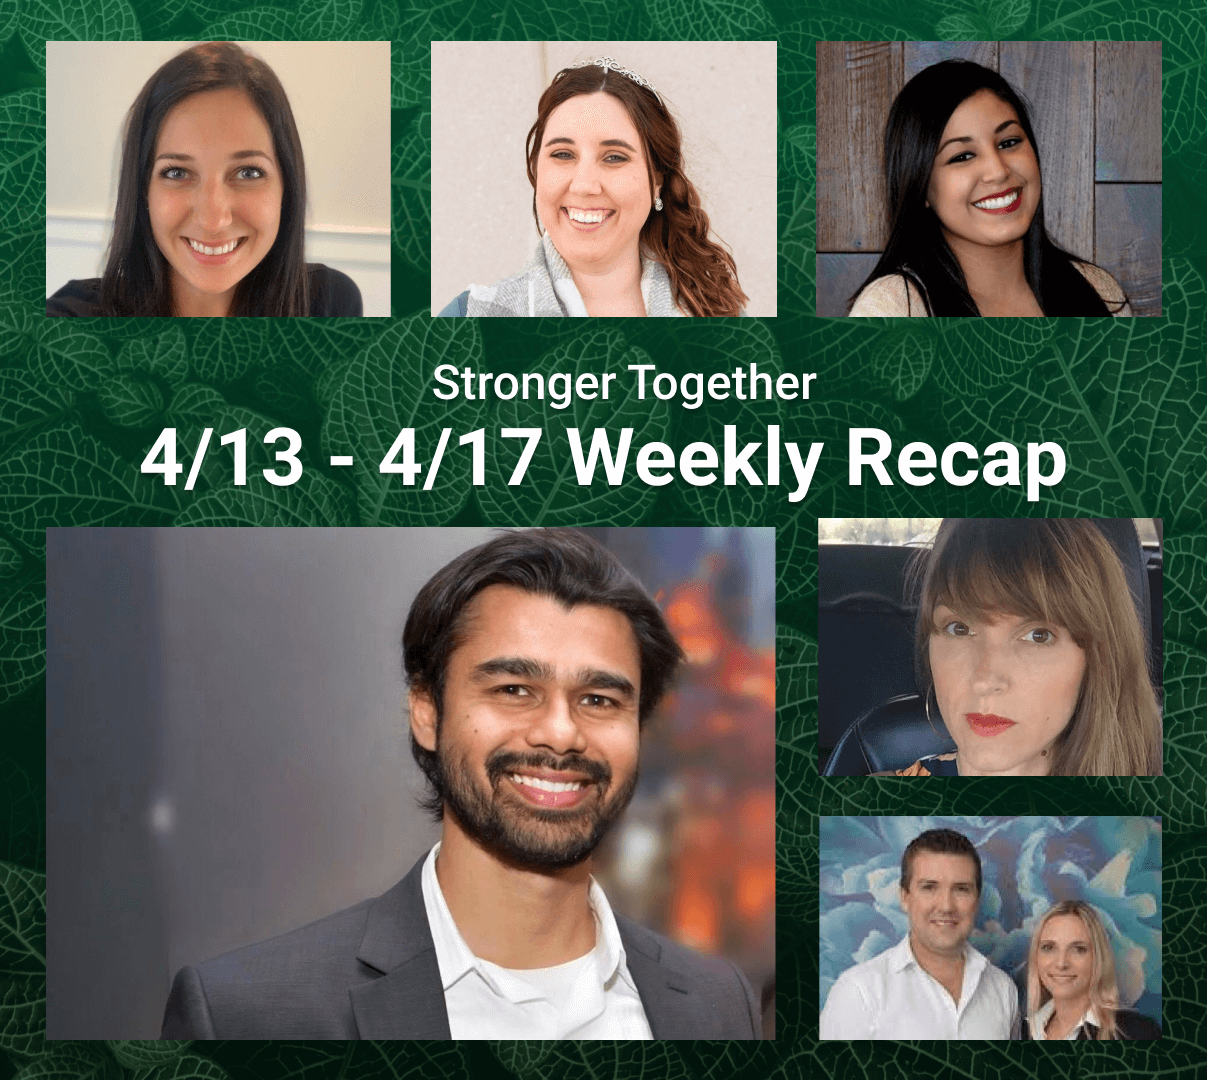 Live Events Recap for the Week of April 13